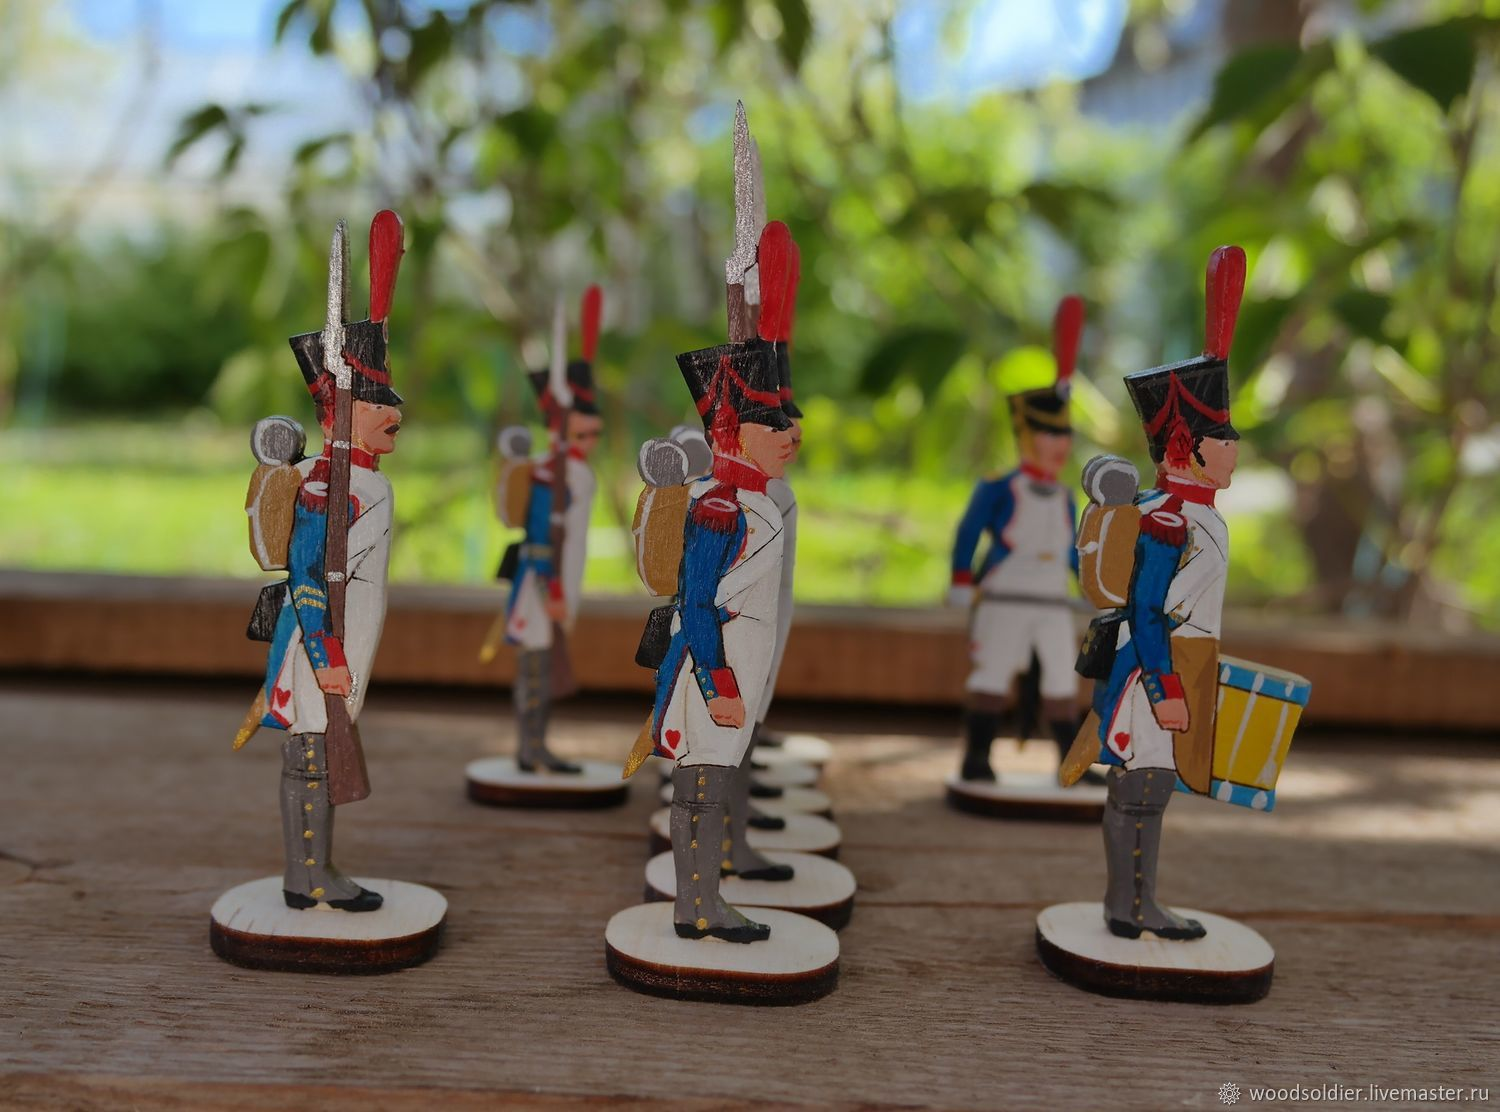 Soldiers in the form of Napoleonic wars, Military miniature, Izhevsk,  Фото №1